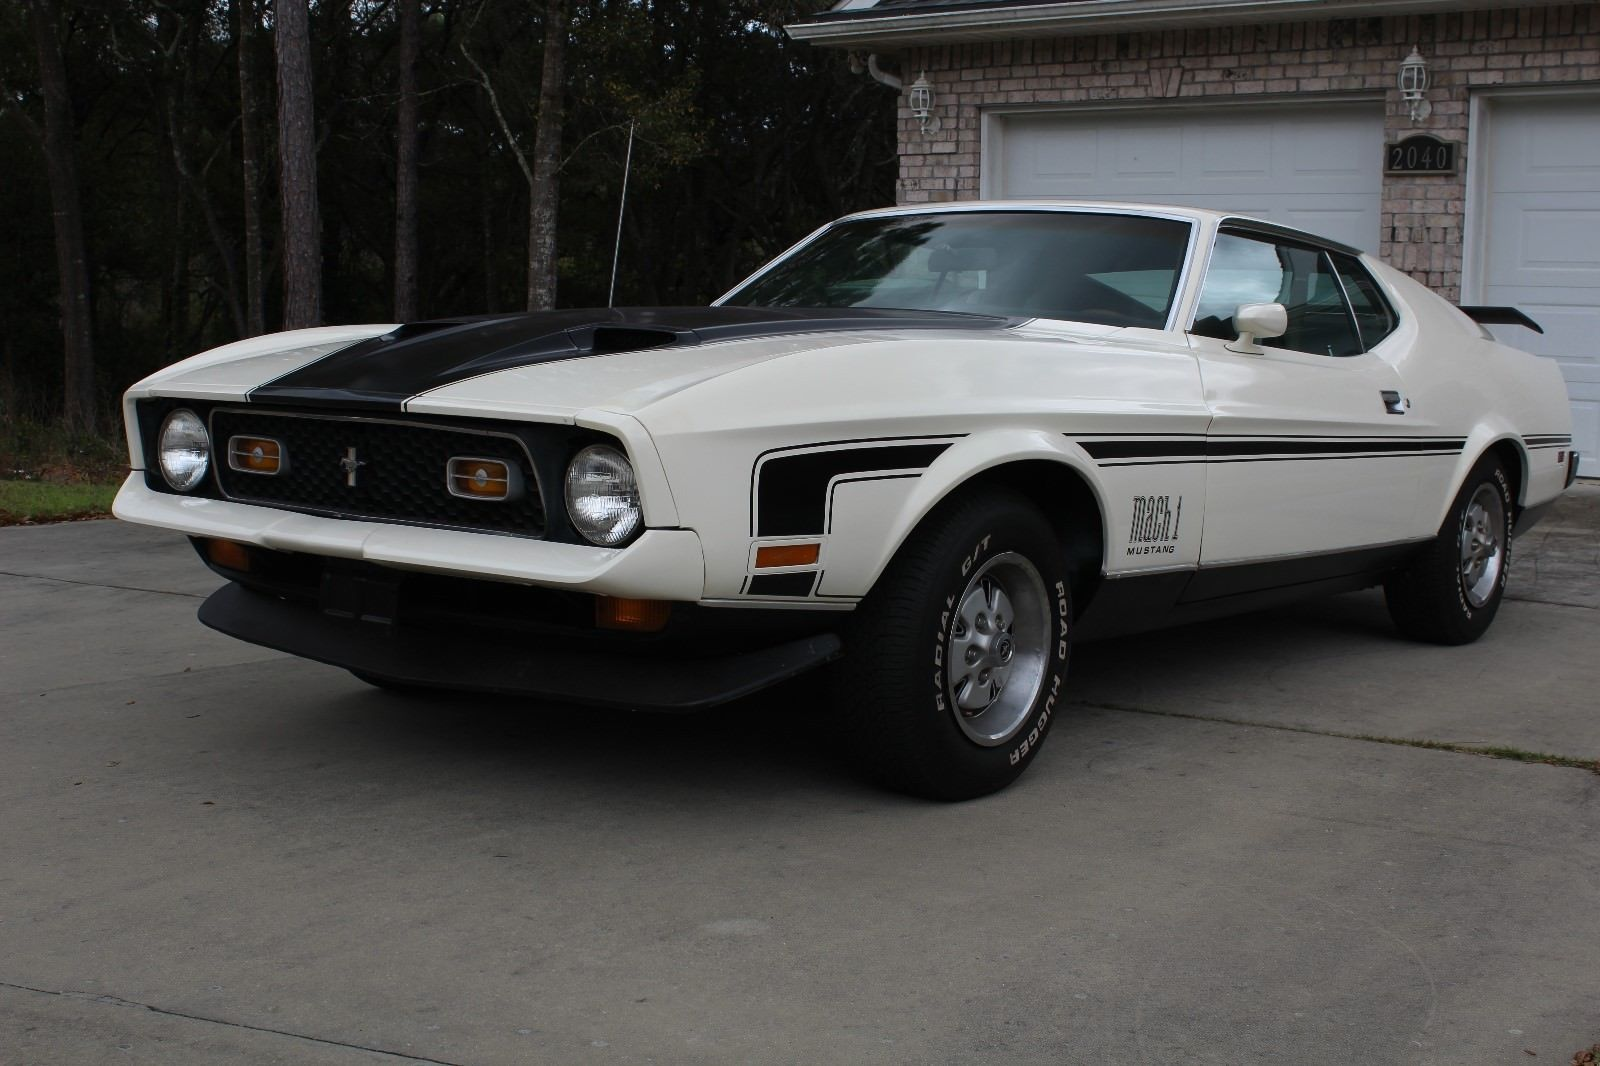 Awesome 1971 Ford Mustang Mach 1 1971 Mustang Mach 1 351 Cleveland 4v 2018 2019 Mycarboard